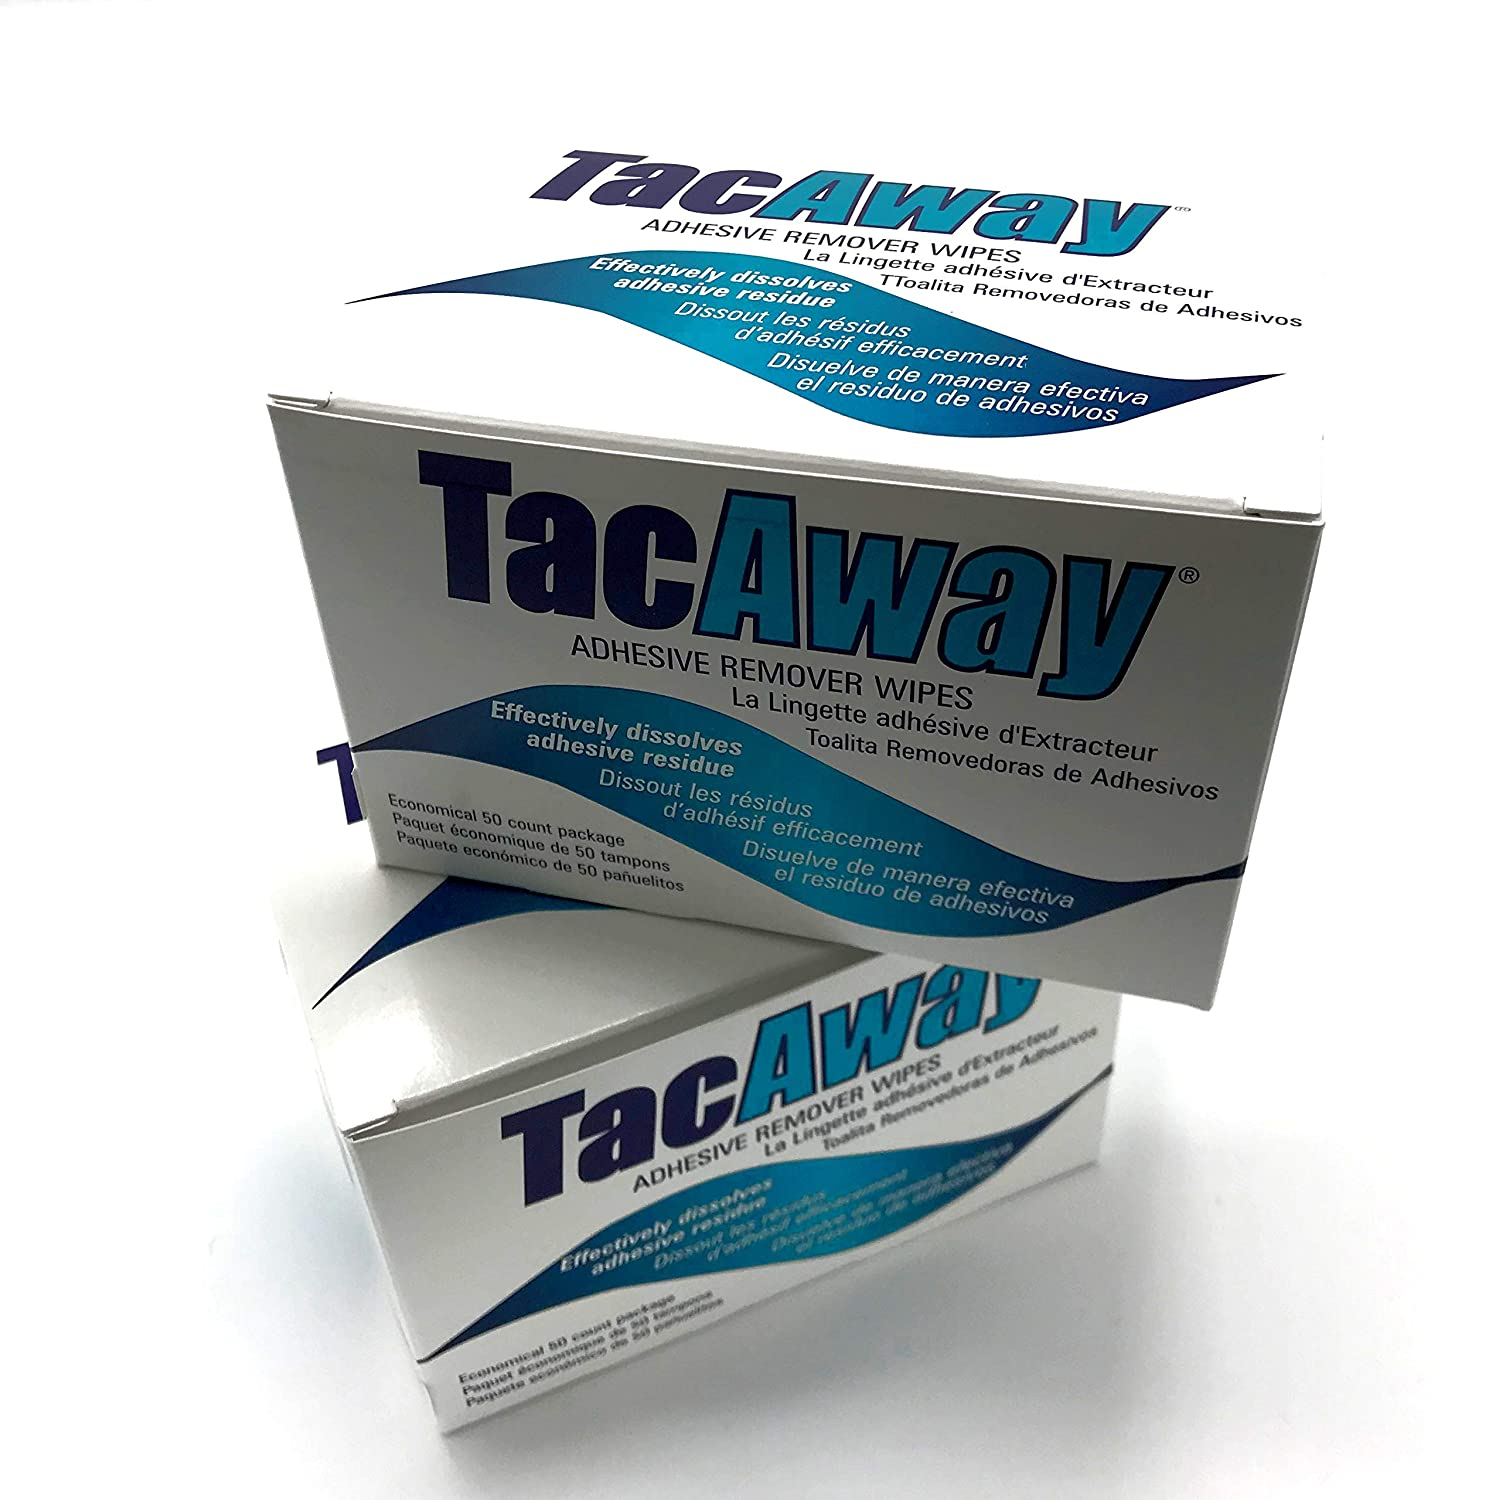 Skin-Tac-H Adhesive TacAway Remover Wipes, 50 count